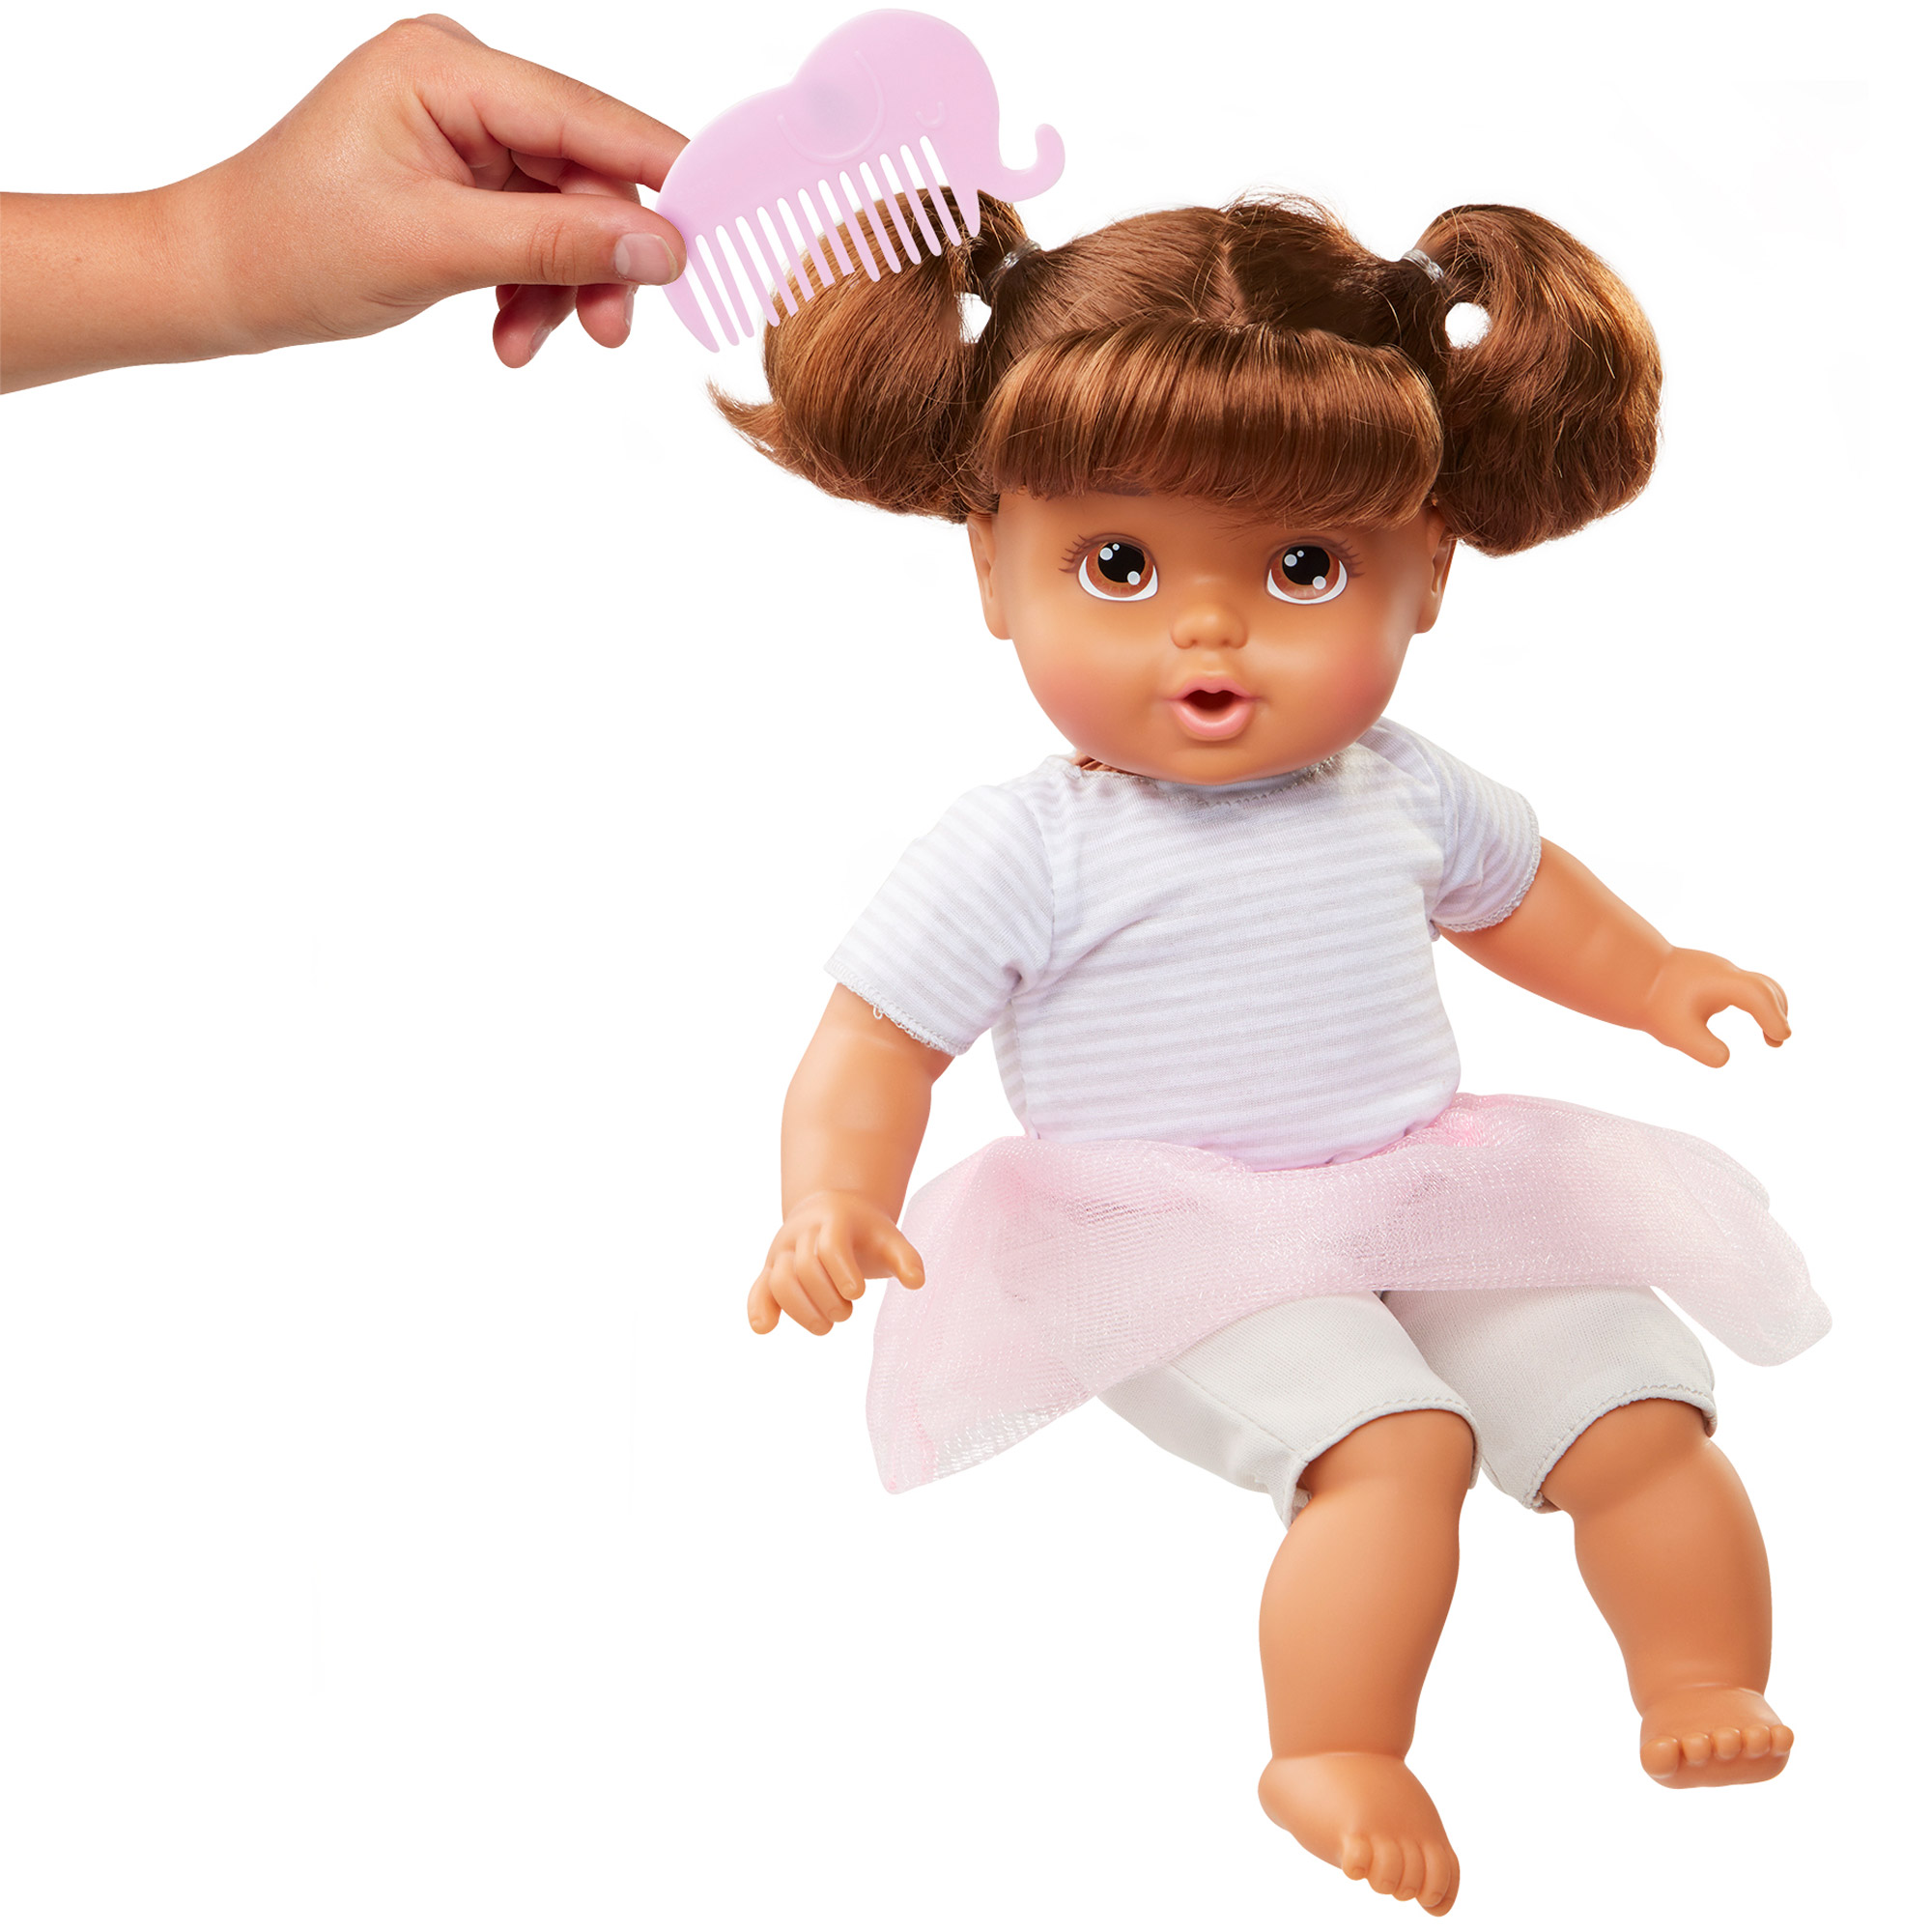 Perfectly Cute Baby 14 inch Latin My Sweet Toddler Doll